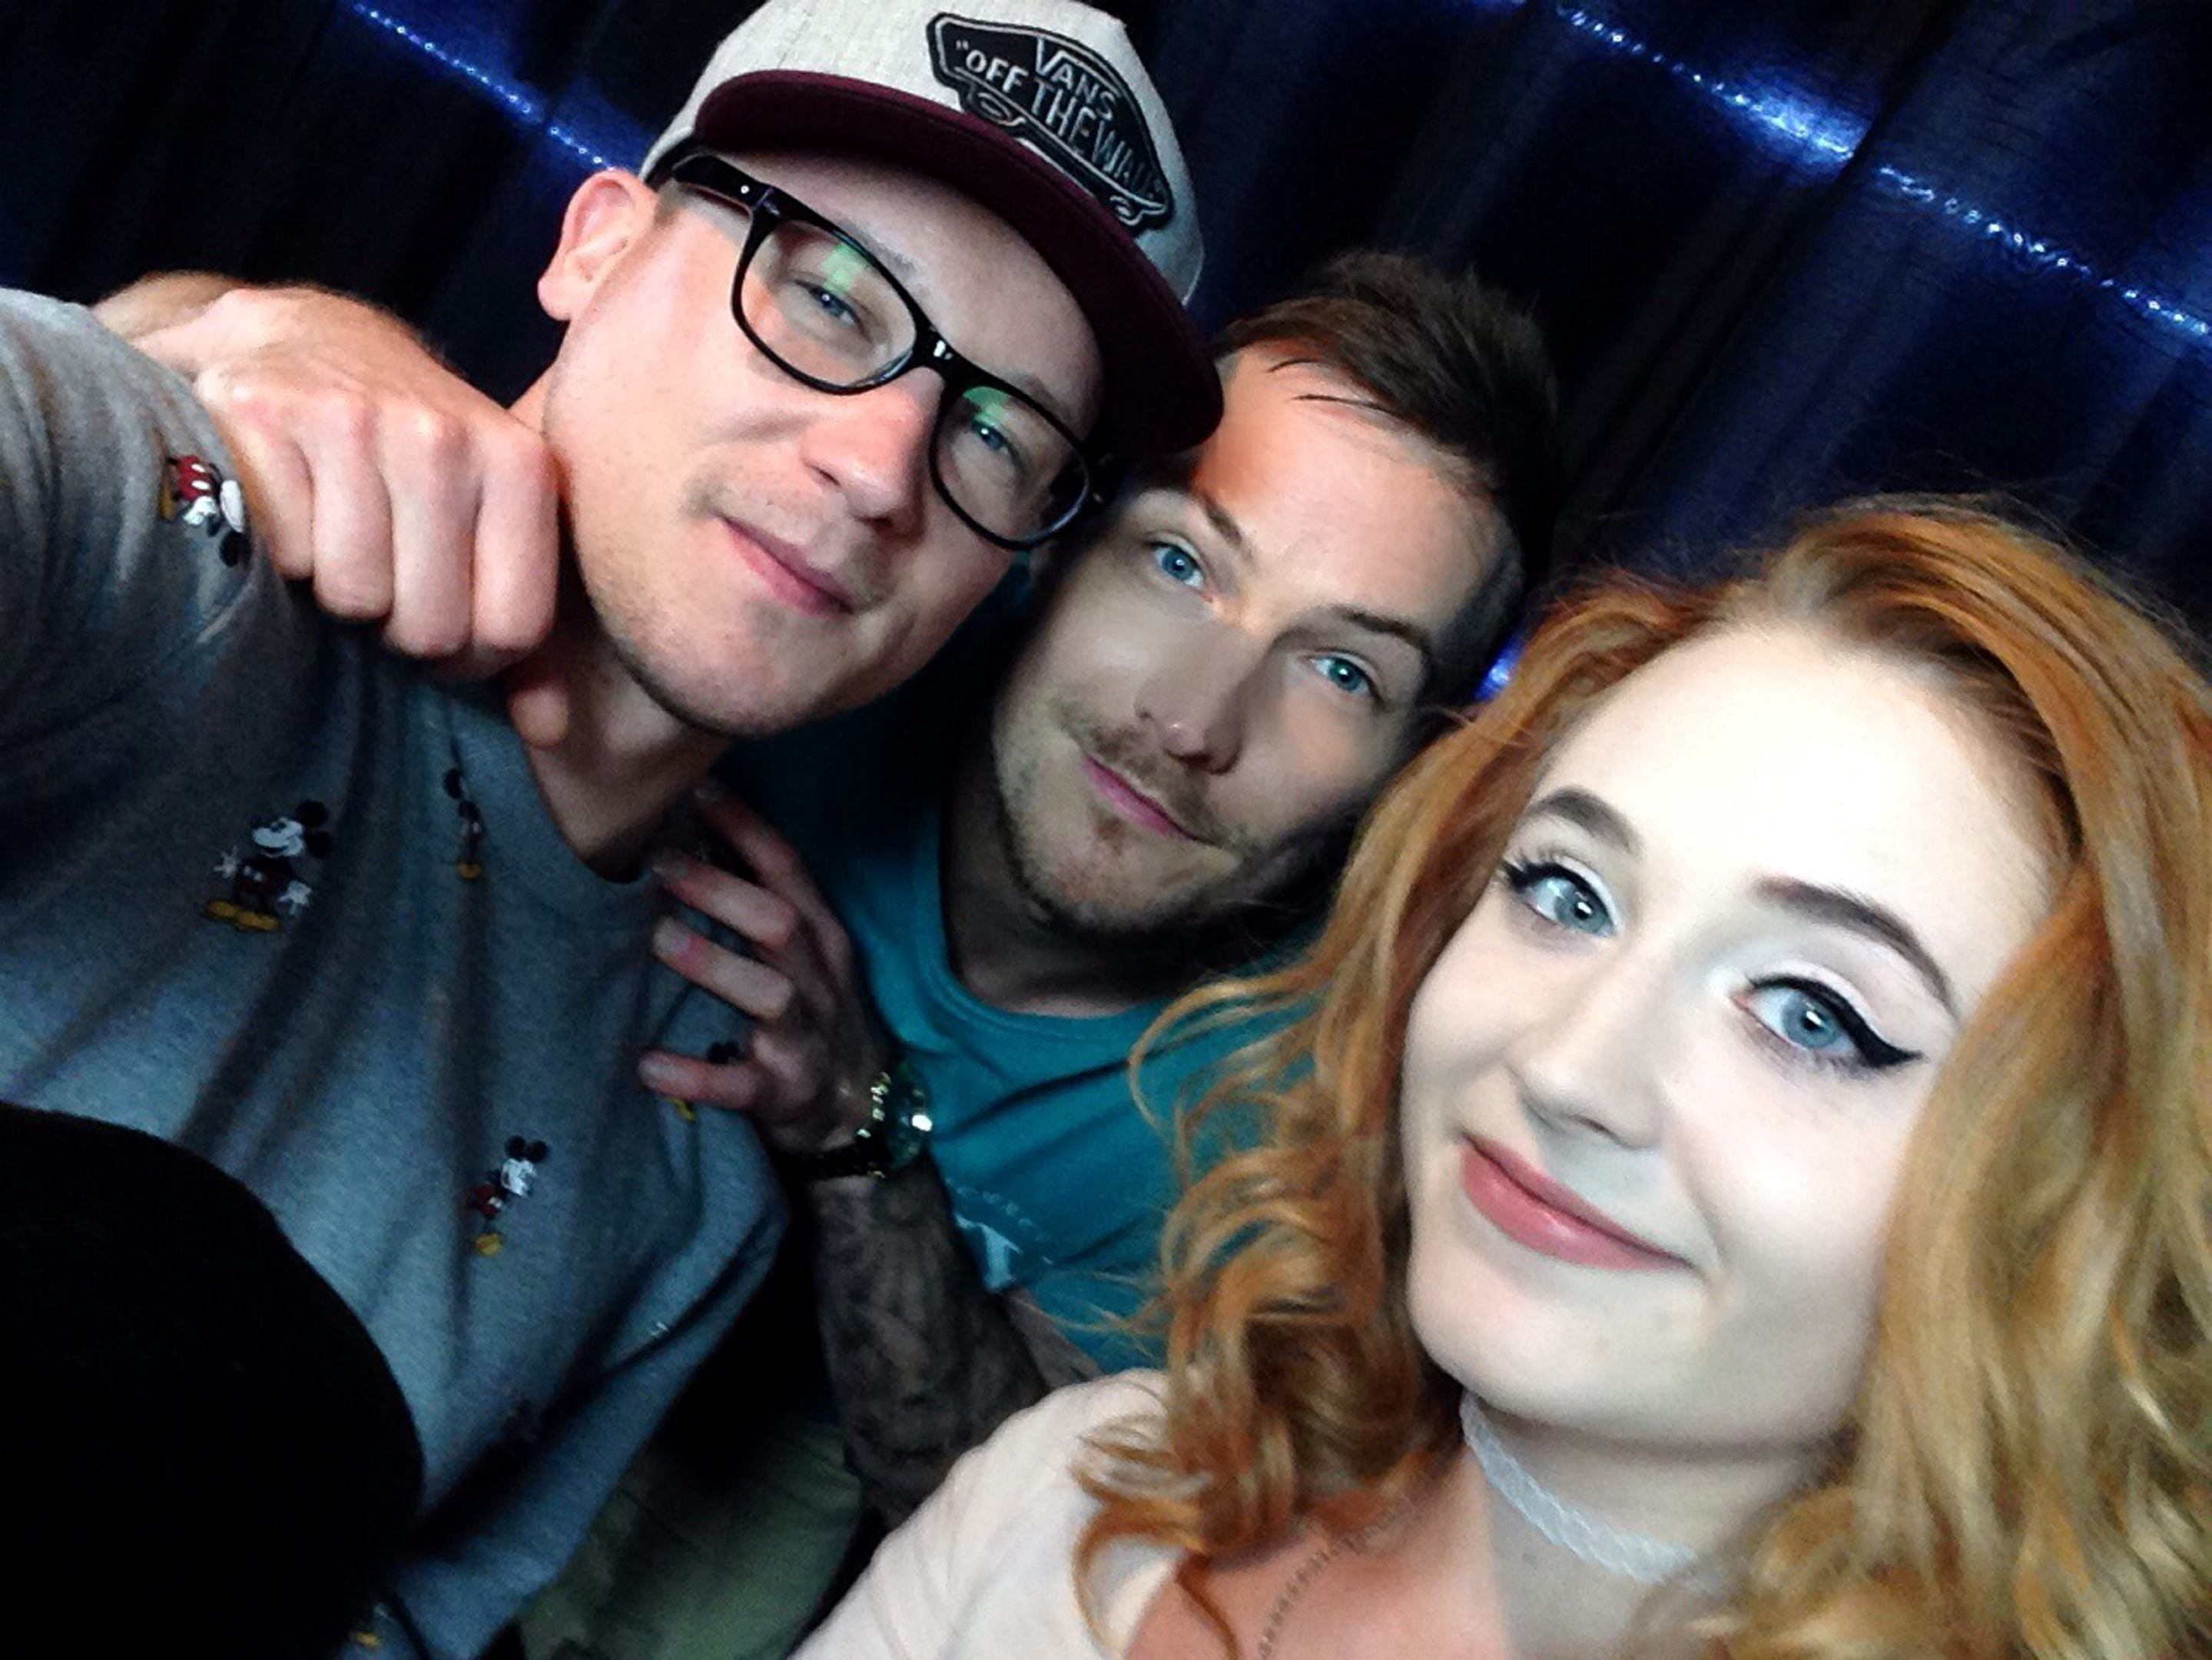 SHY & DRS and former X Factor contestant Janet Devlin have recorded an anti-bullying campaign song.